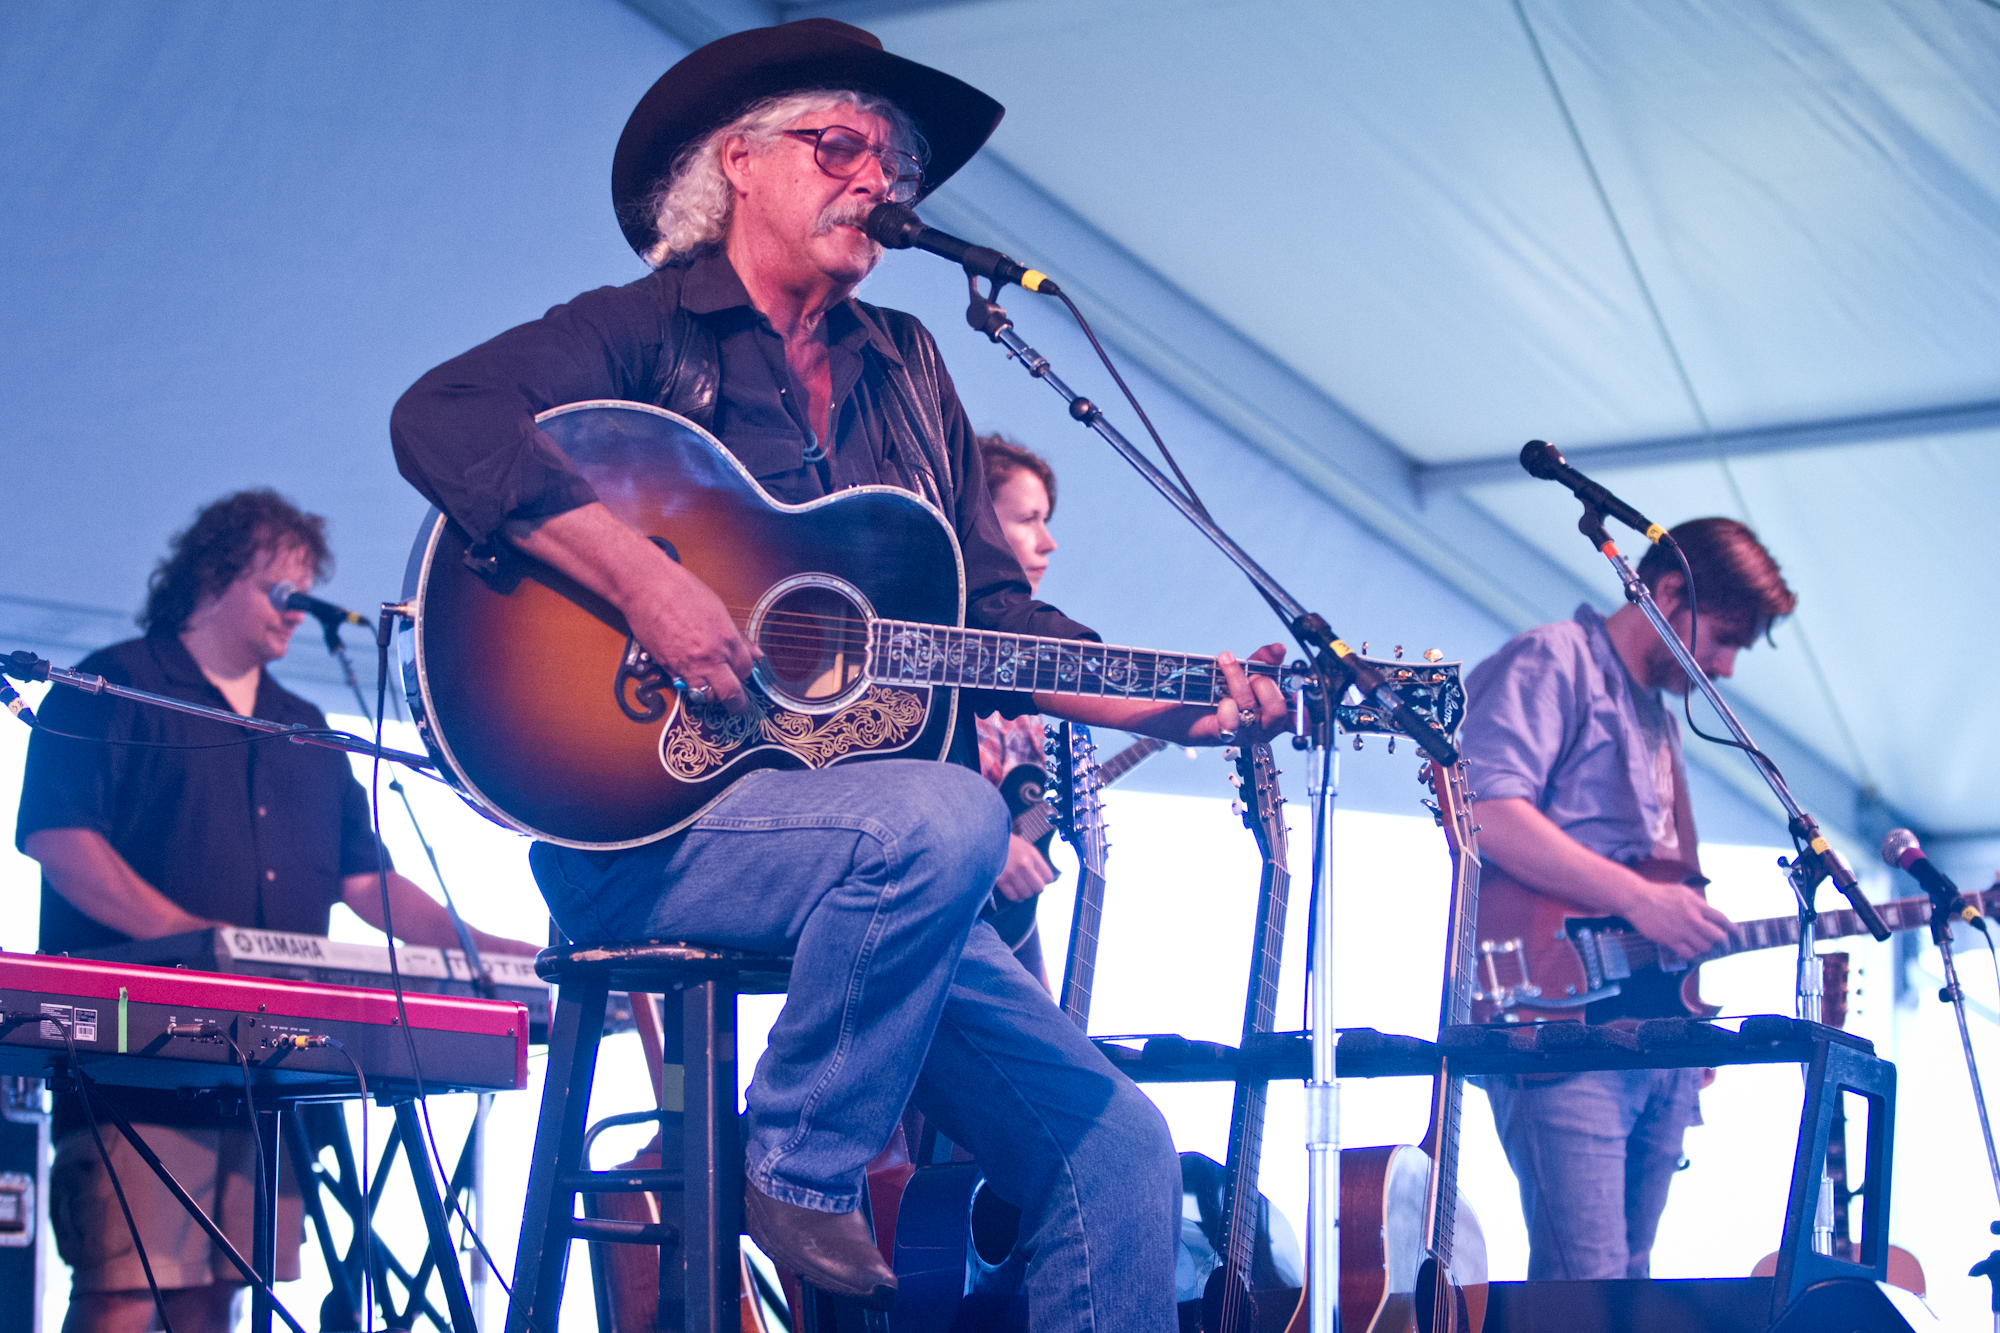 Woody Guthrie's son, Arlo, played with The Guthrie Family Reunion at the Newport Folk Festival moments before being joined by his grandchildren on stage.